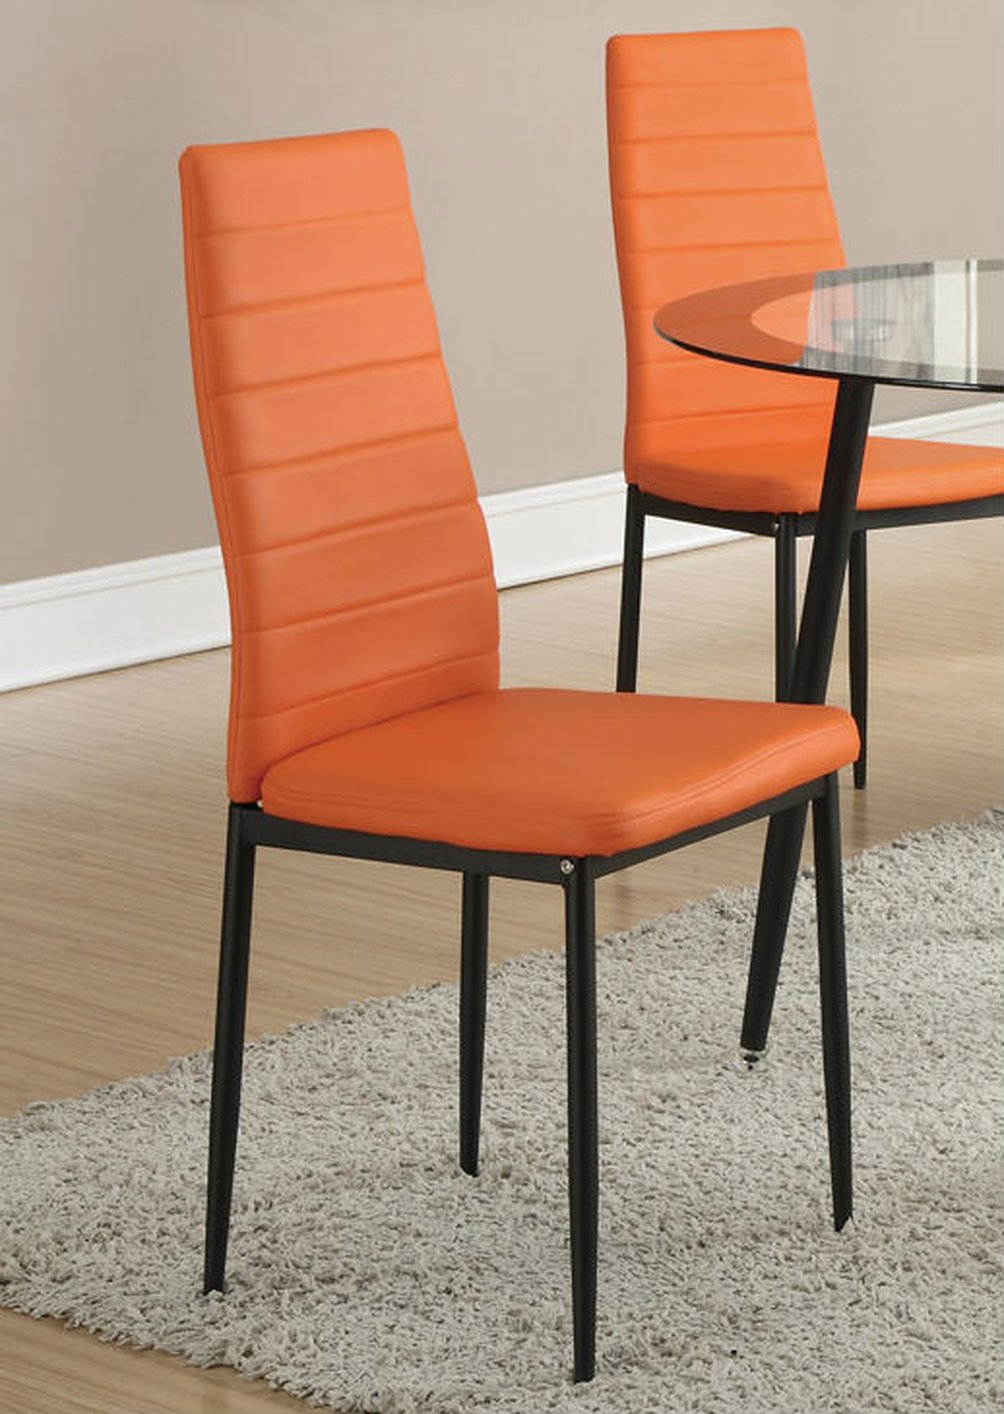 Orange Metal Dining Chair Steal A Sofa Furniture Outlet Los Angeles Ca